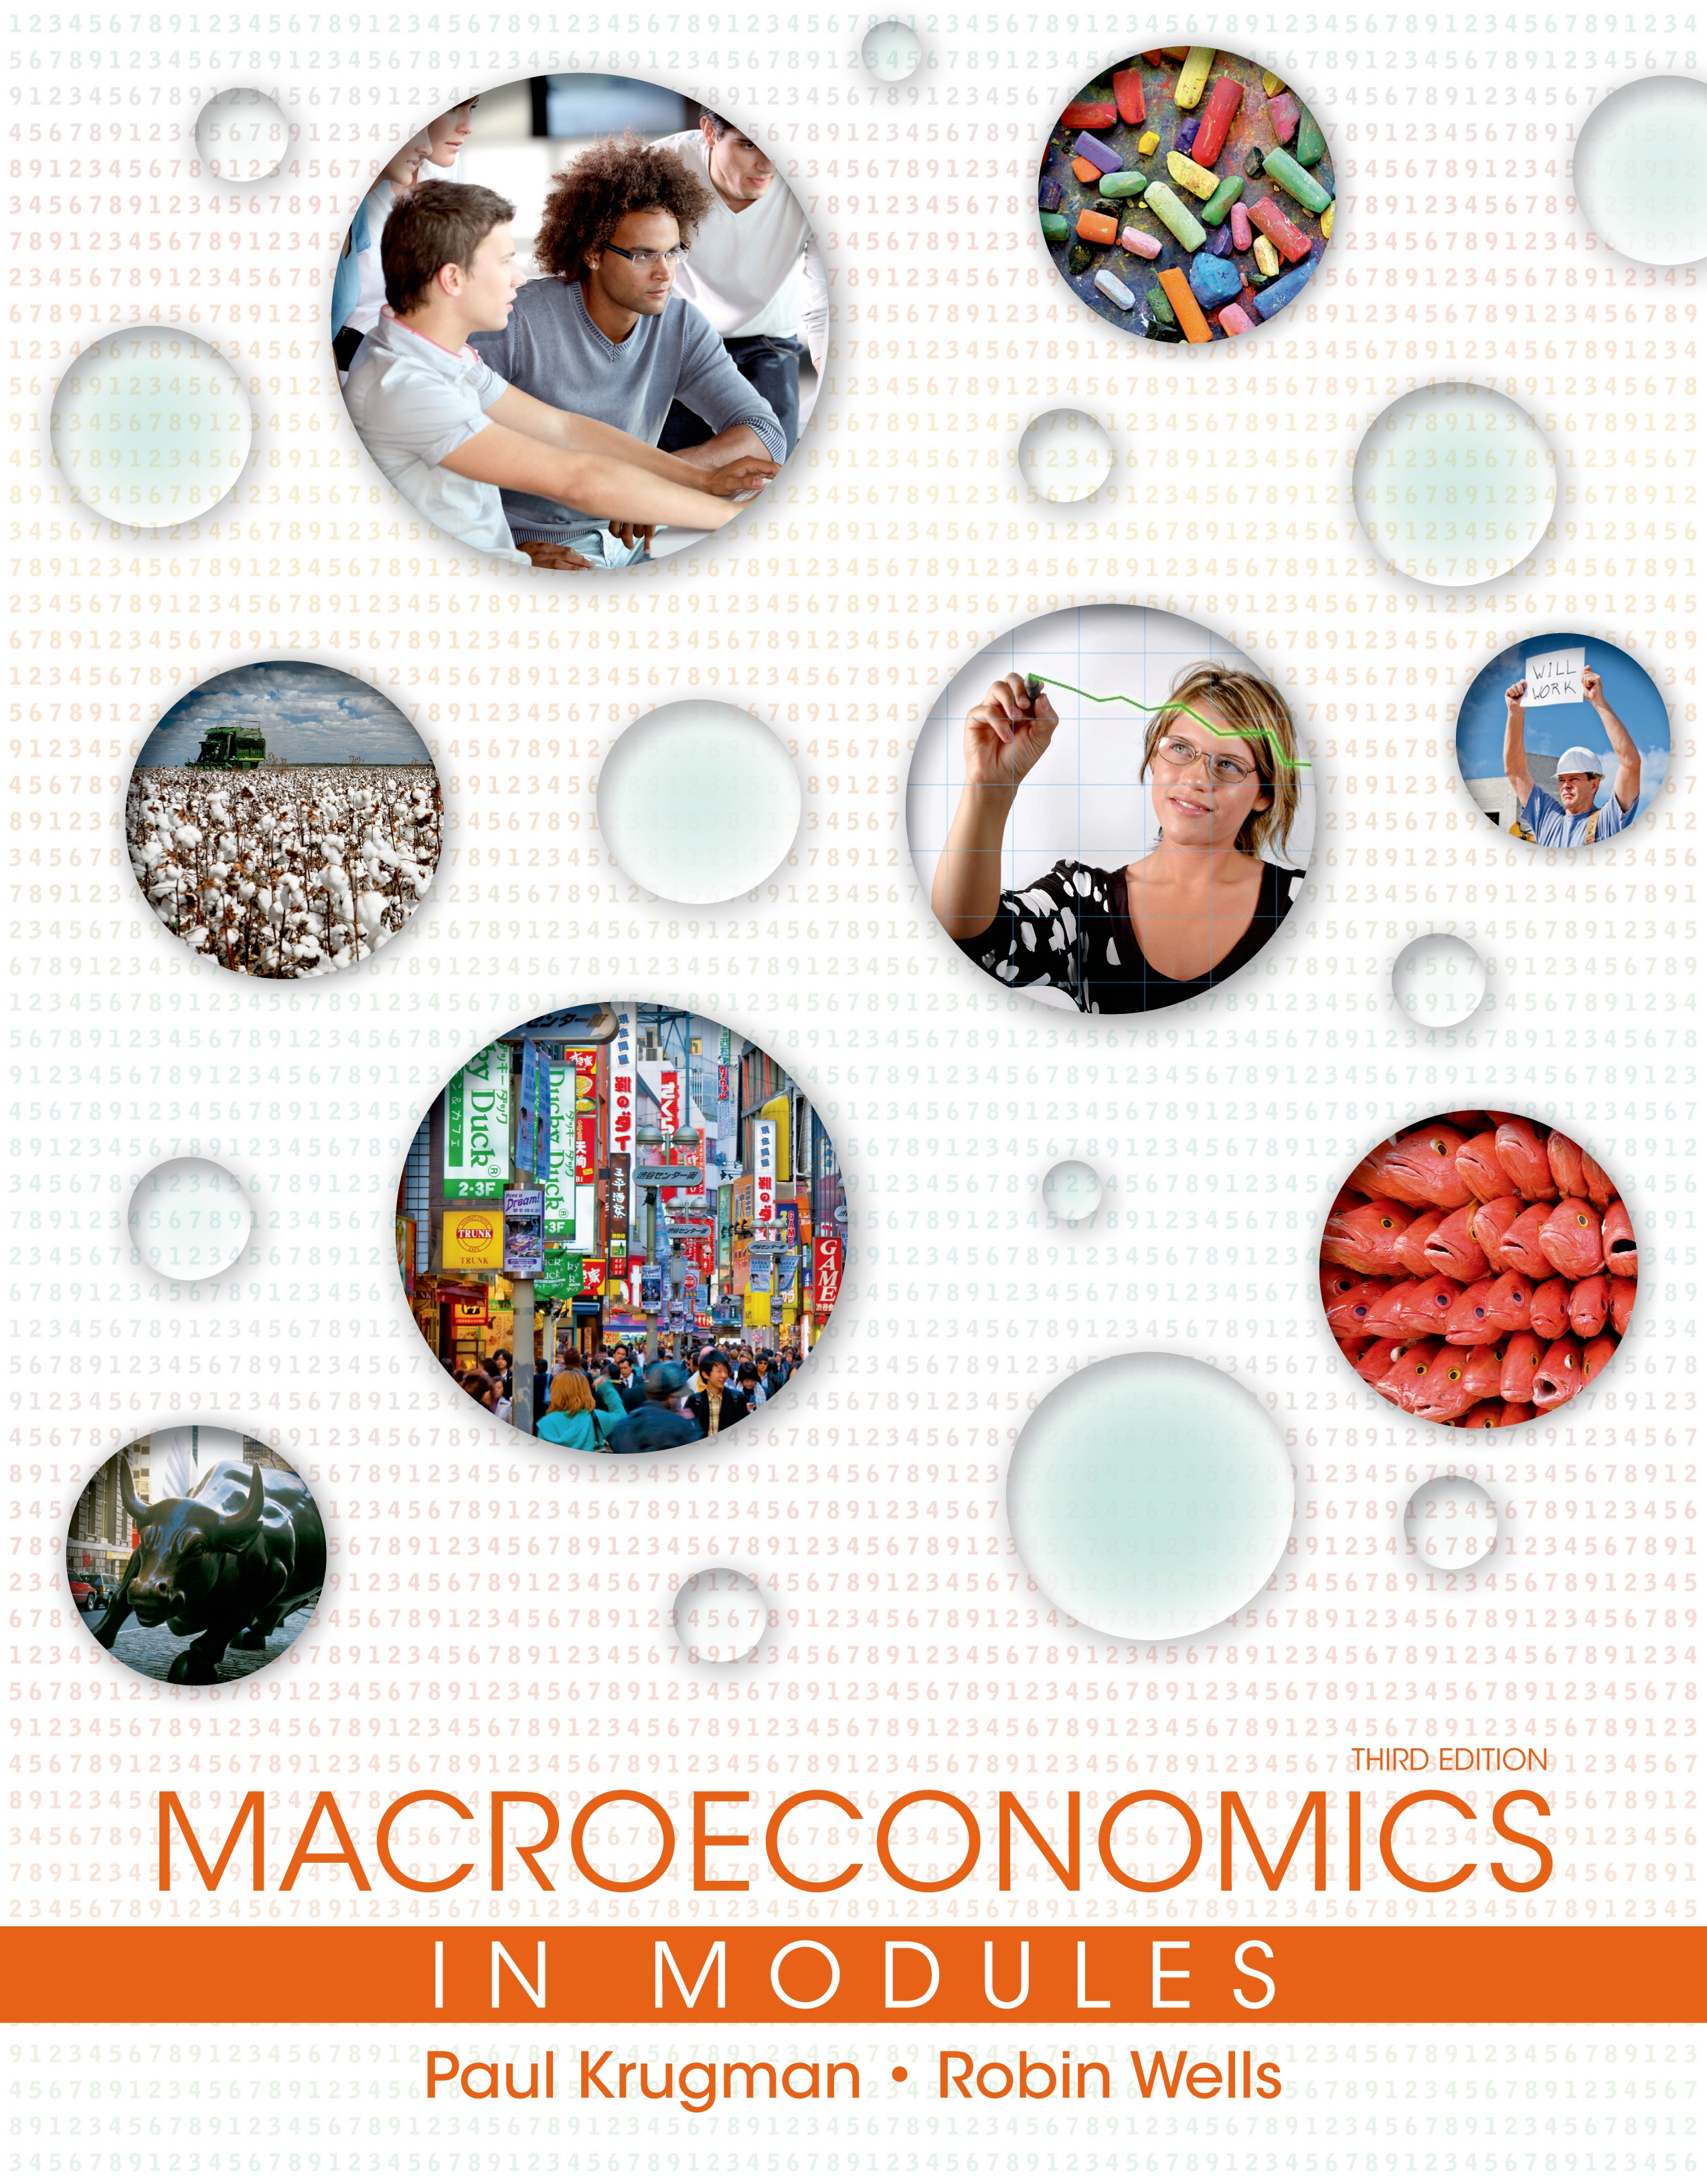 Macroeconomics in modules 9781464139055 macmillan learning download image macroeconomics in modules fandeluxe Choice Image